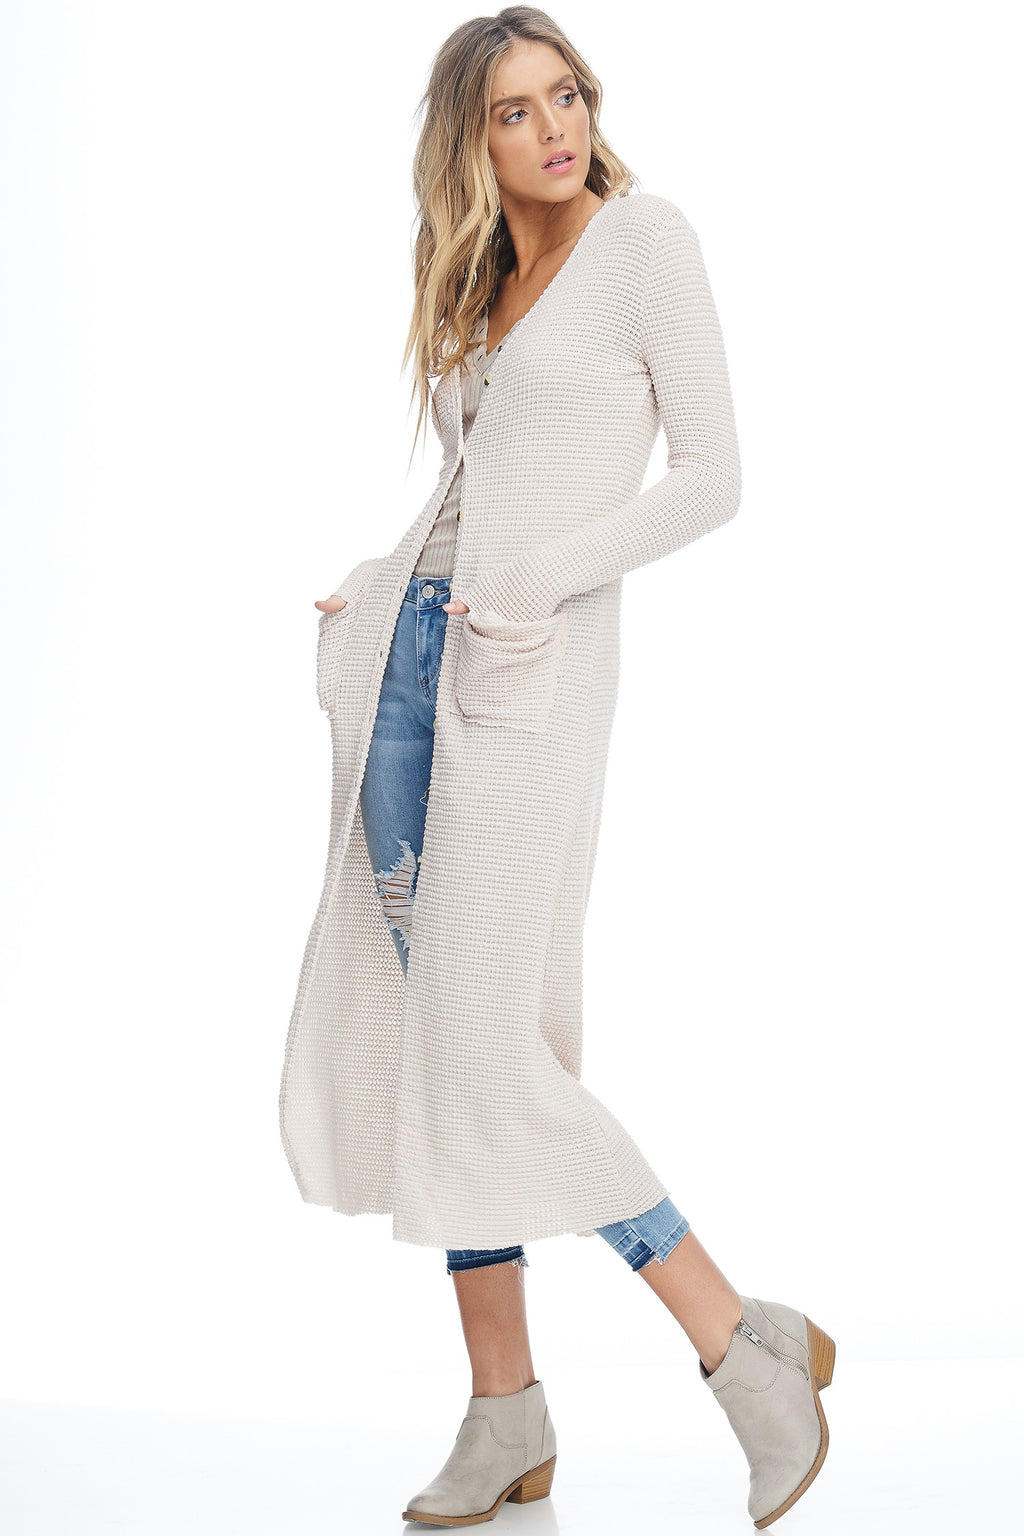 W18-010 Long Knit Buttoned Cardigan